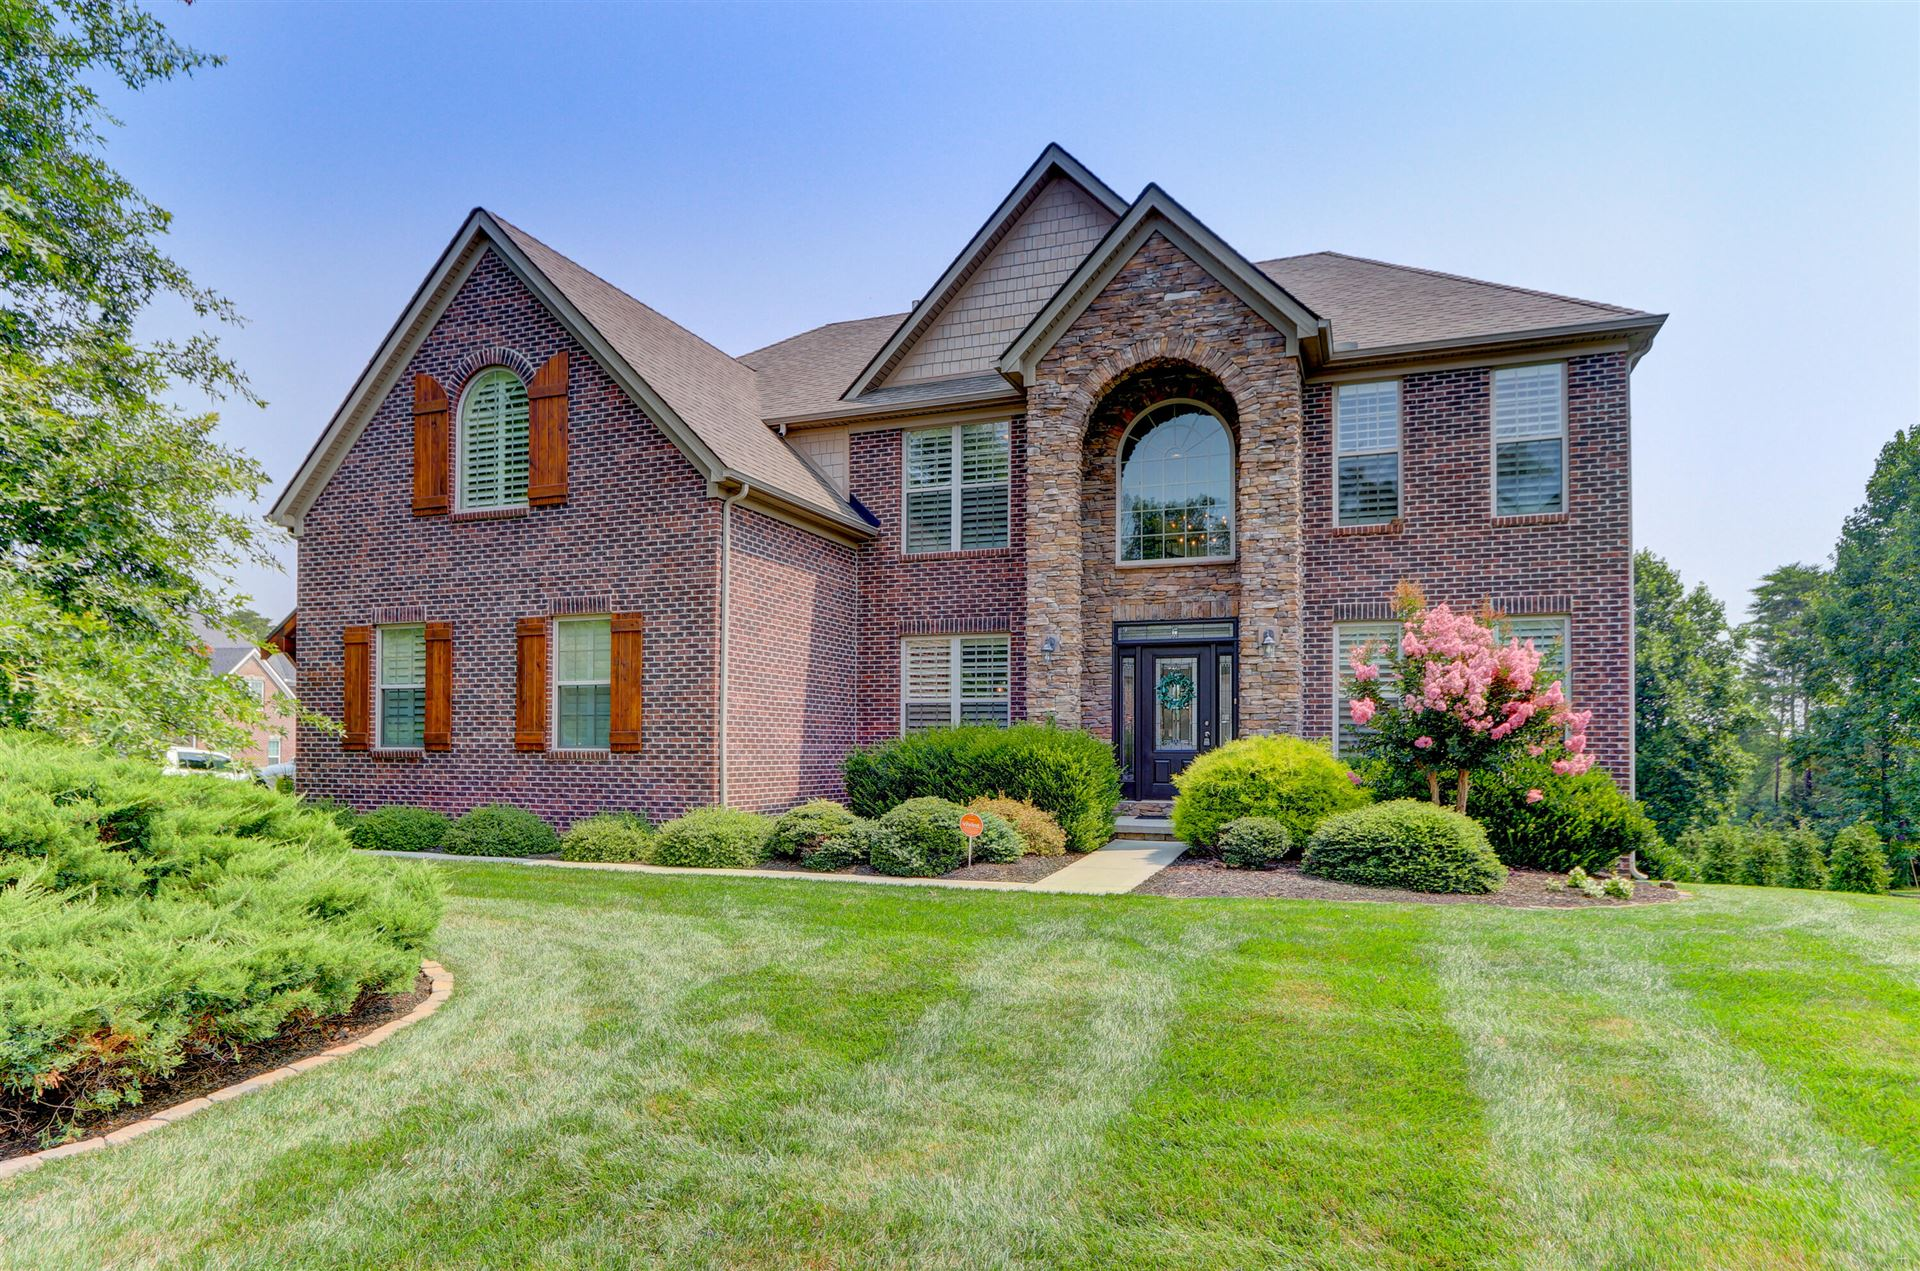 Photo of 12516 Pine Thicket Lane, Knoxville, TN 37922 (MLS # 1162299)